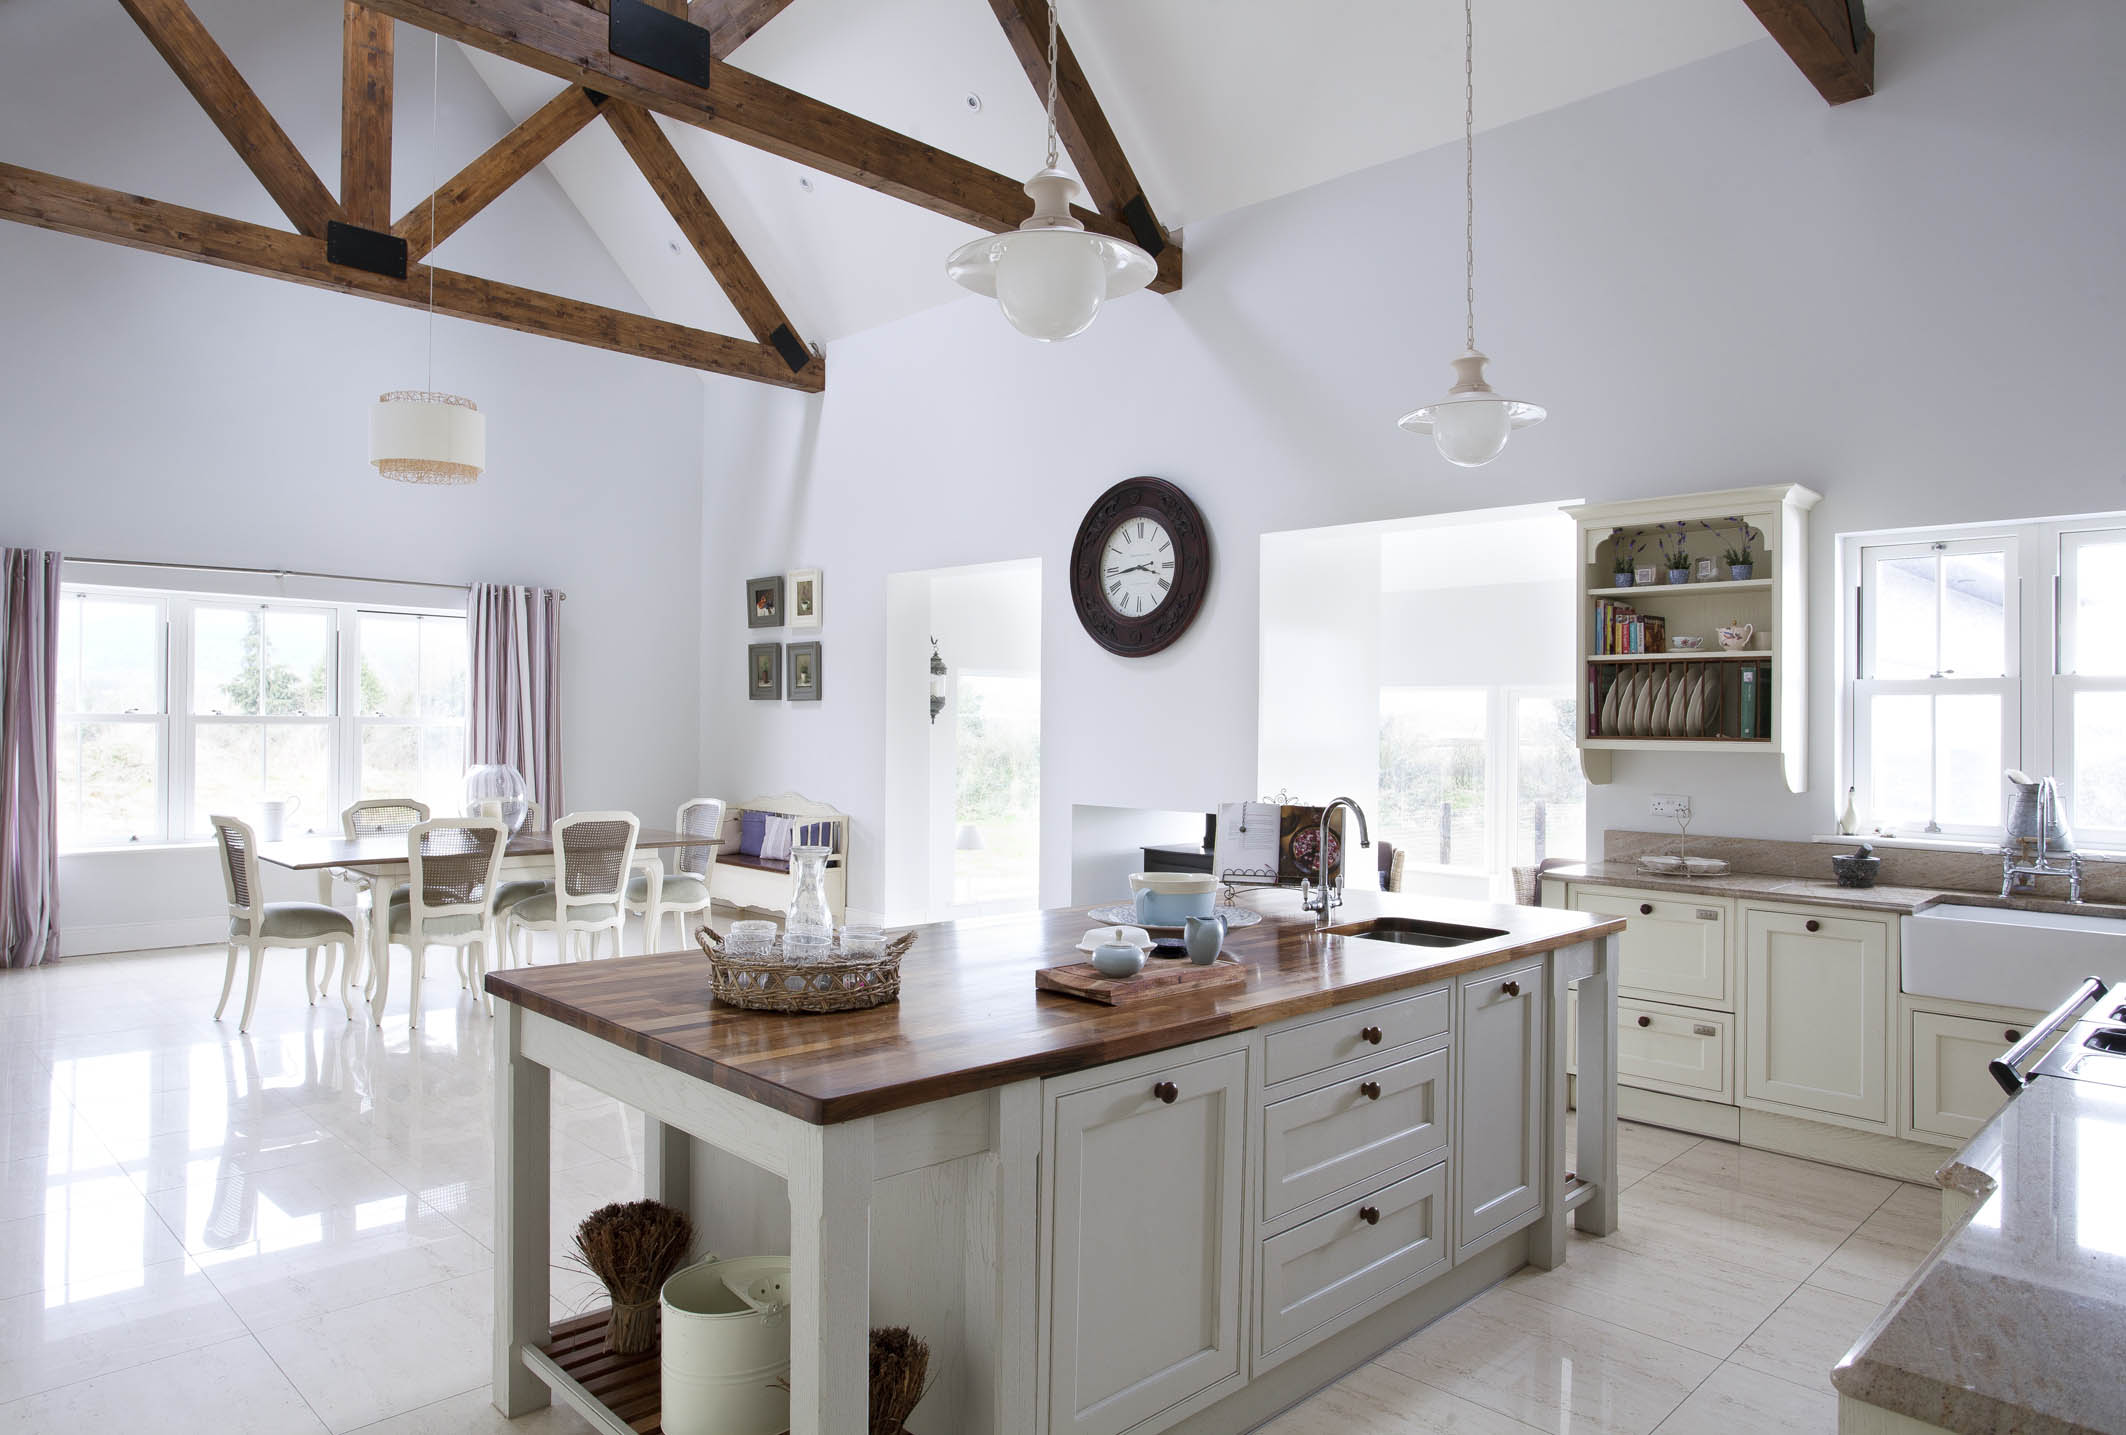 Farrow And Ball Kitchen Handcrafted Bespoke Kitchen Handpainted In White And Pavilion Grey